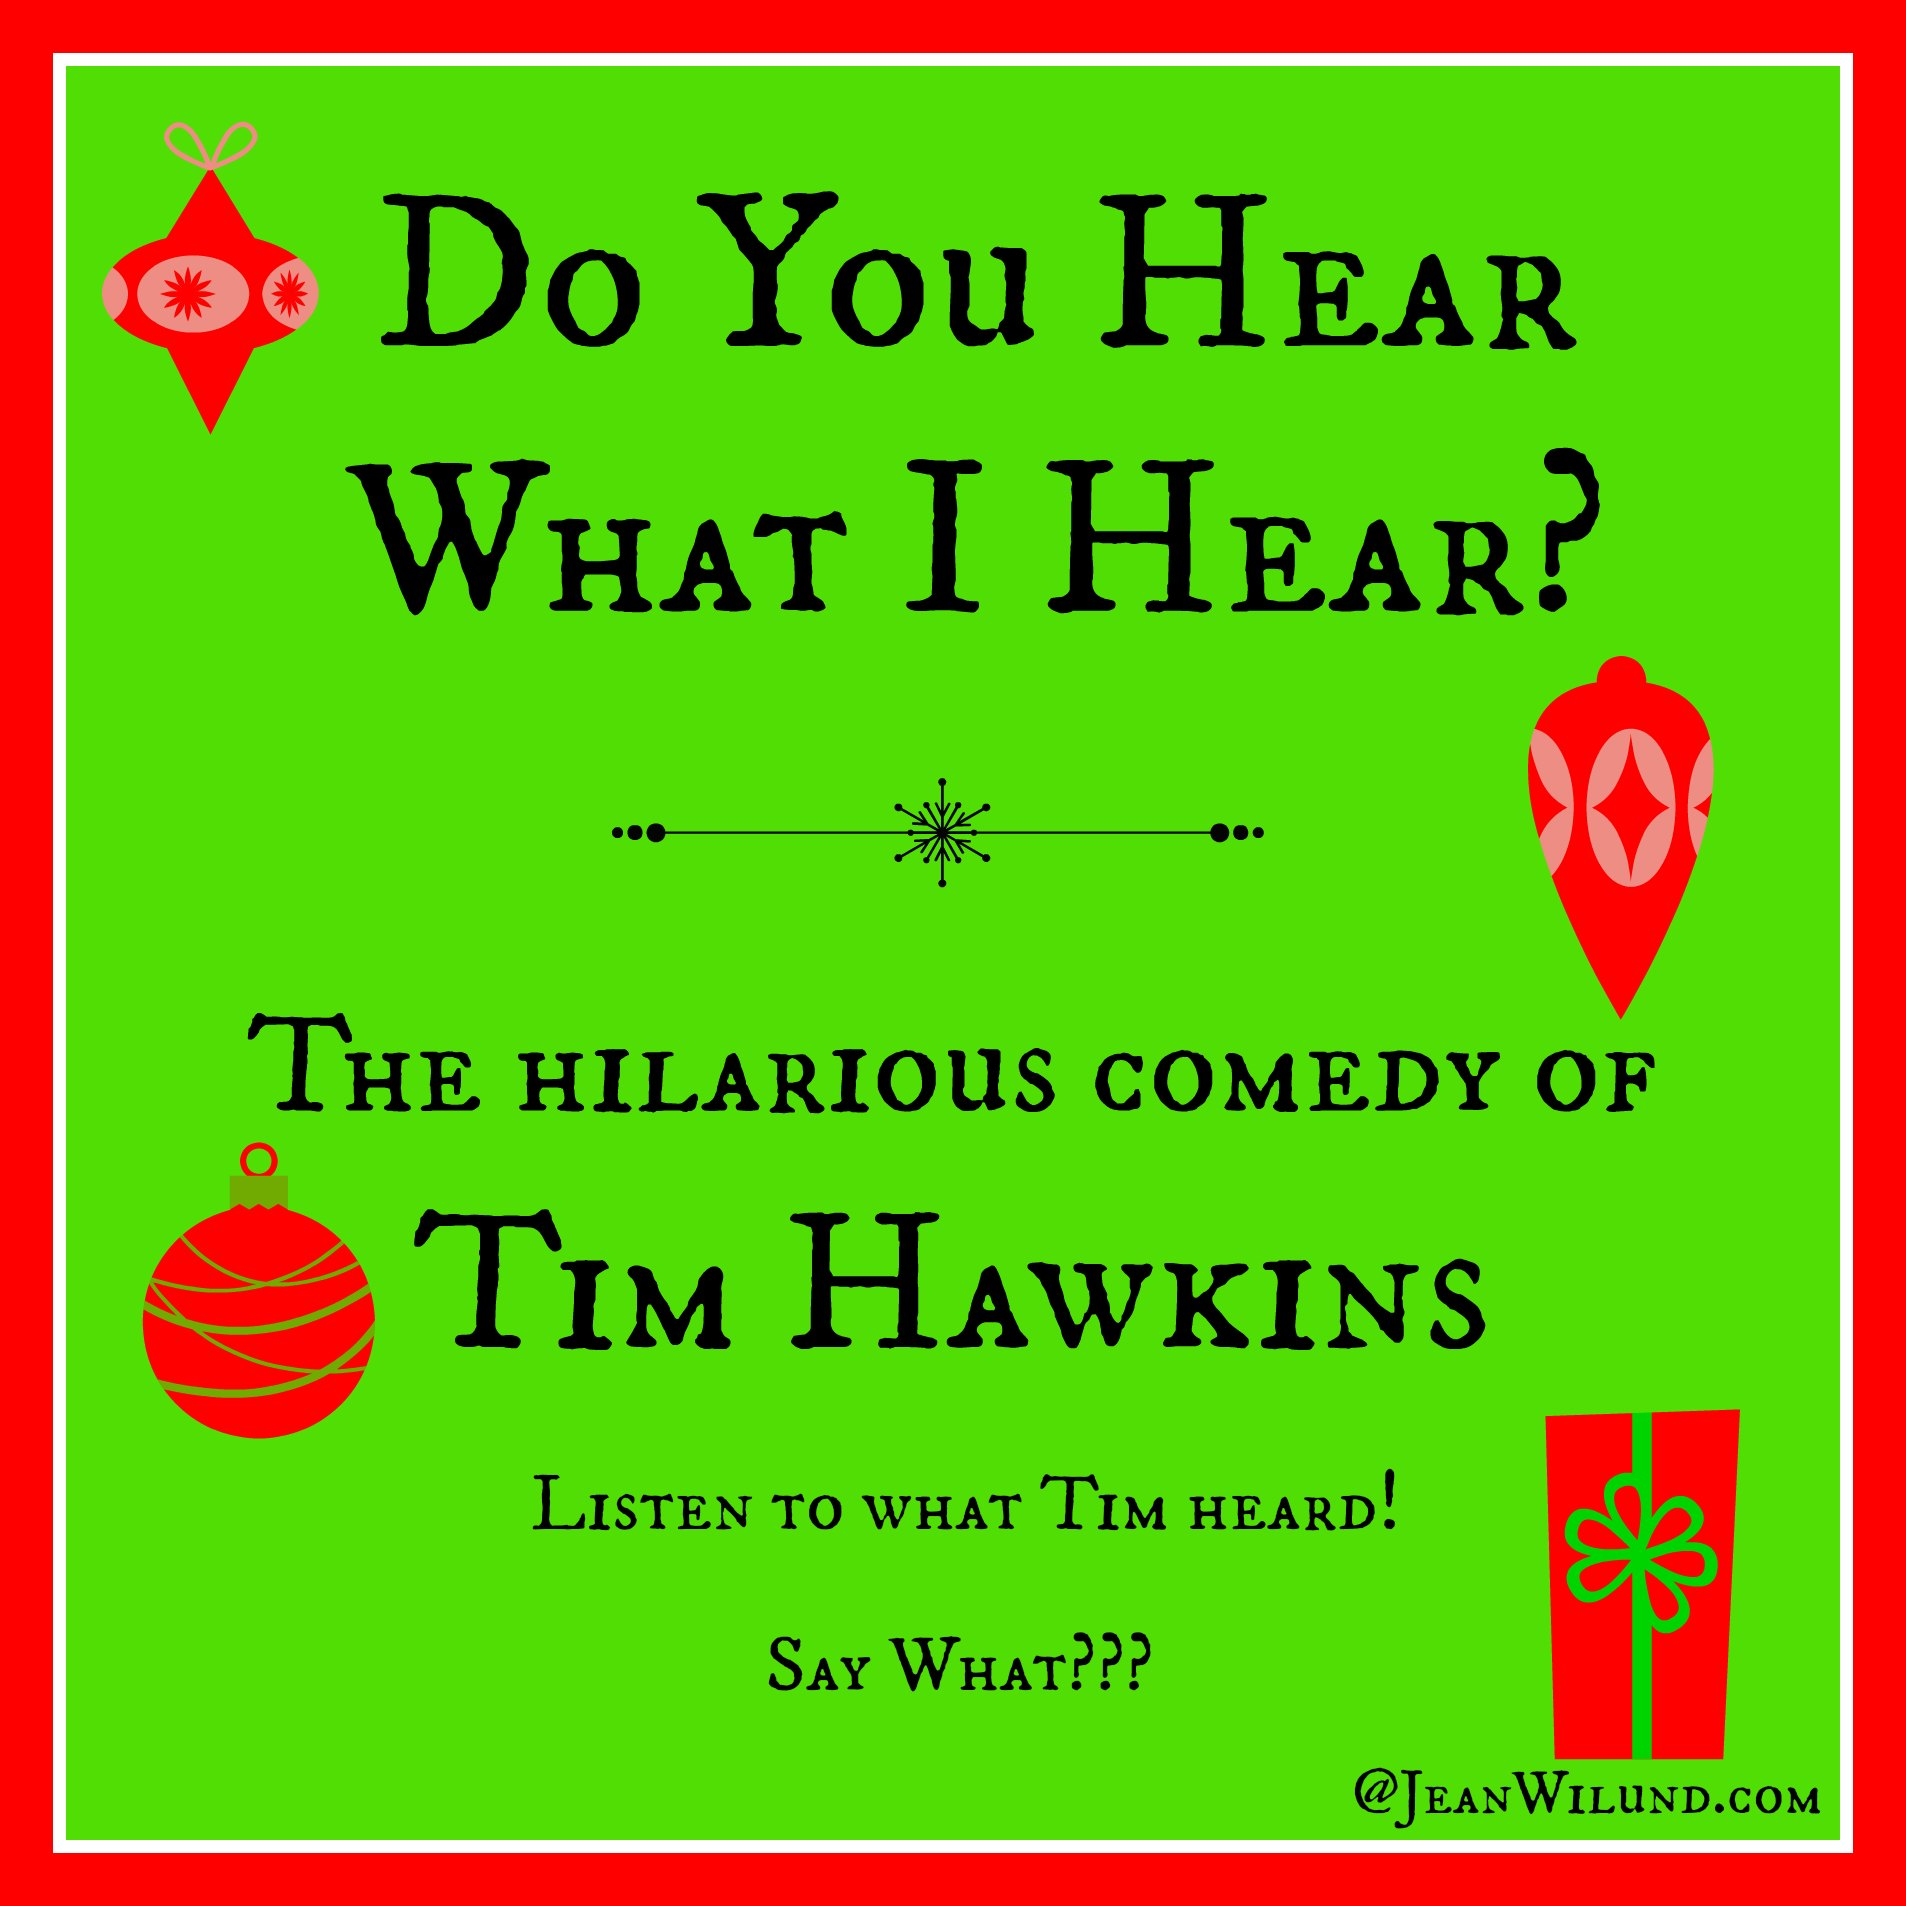 "Click to listen to the hilarious comedy of Tim Hawkins ""Do You Hear What I Hear?"" Say what??? via www.jeanwilund.com"